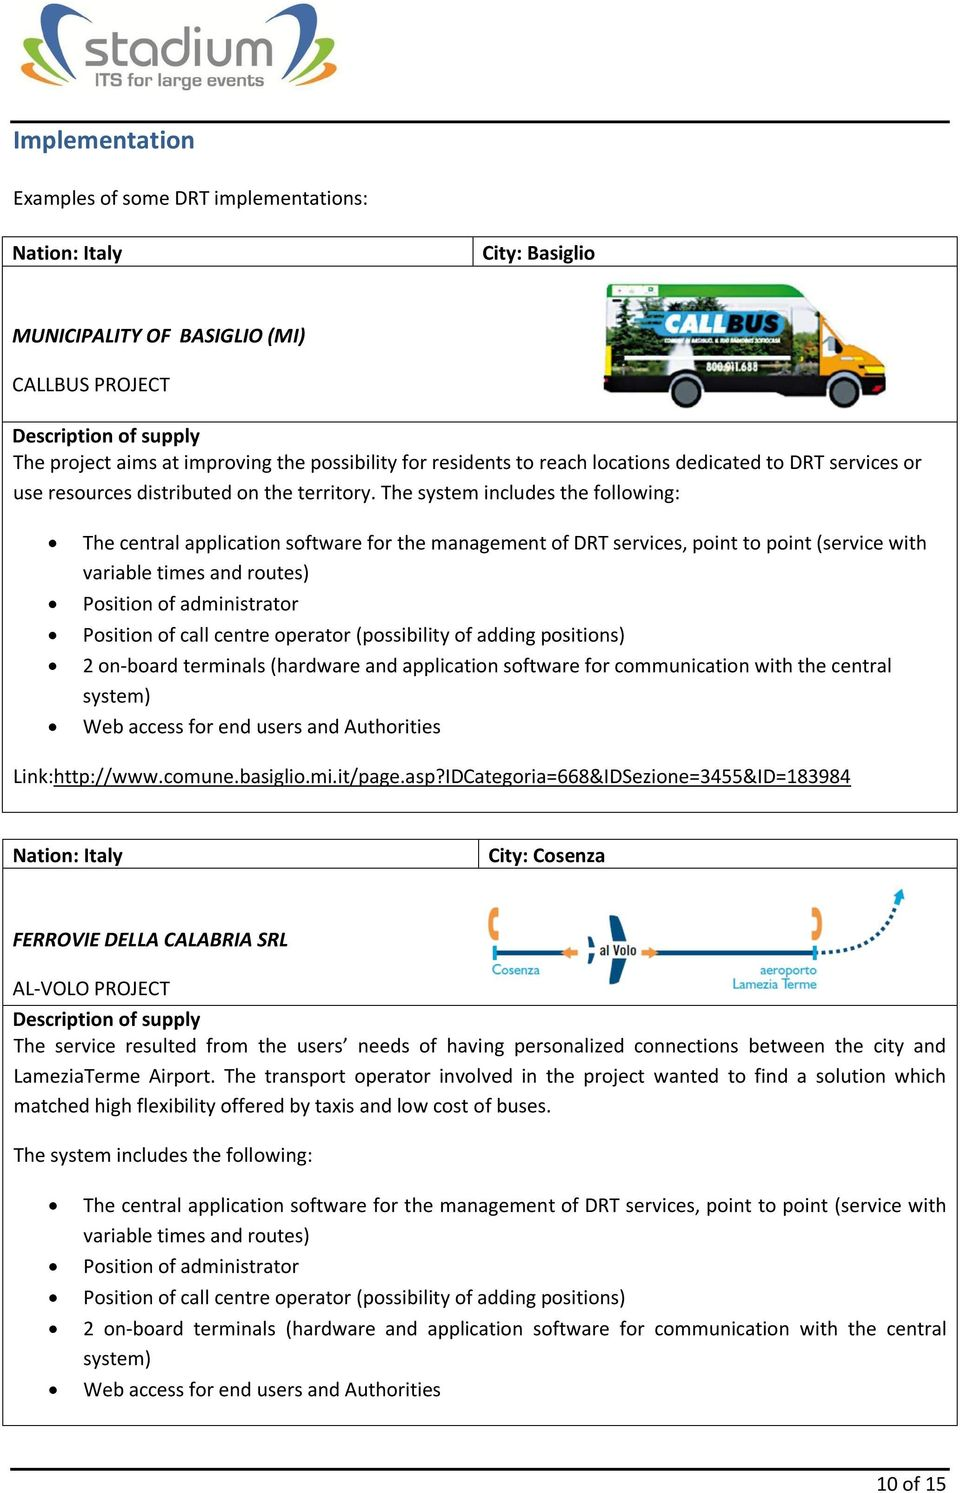 The system includes the following: The central application software for the management of DRT services, point to point (service with variable times and routes) Position of administrator Position of